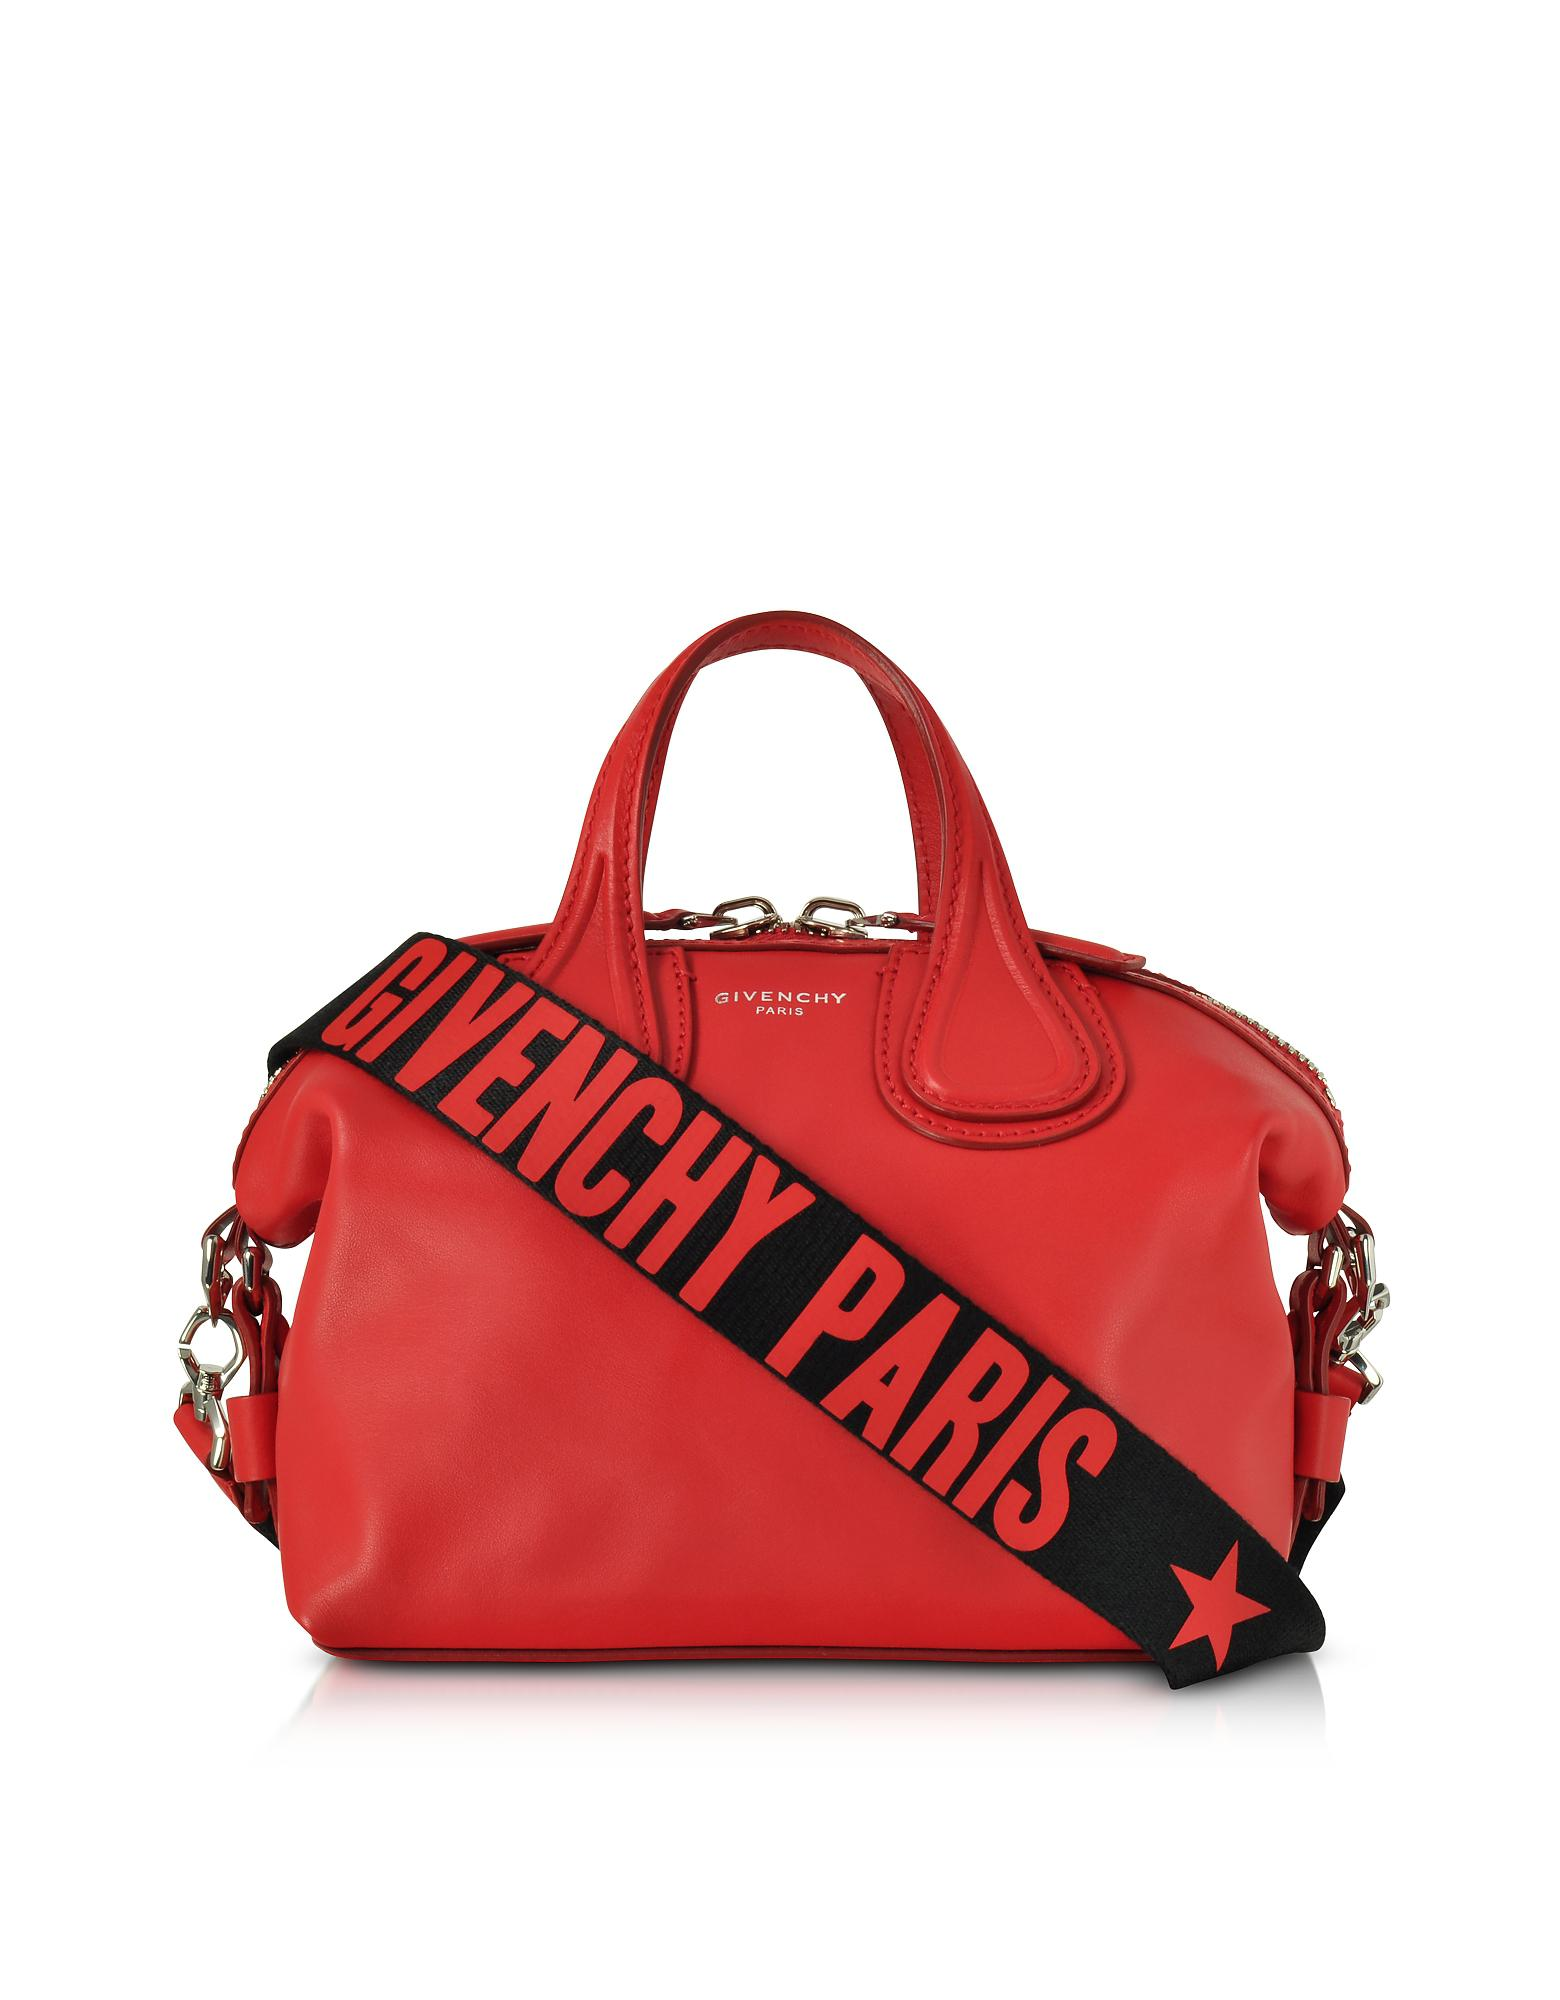 f0f94961df0e Lyst - Givenchy Red Leather Small Nightingale Satchel Bag in Red